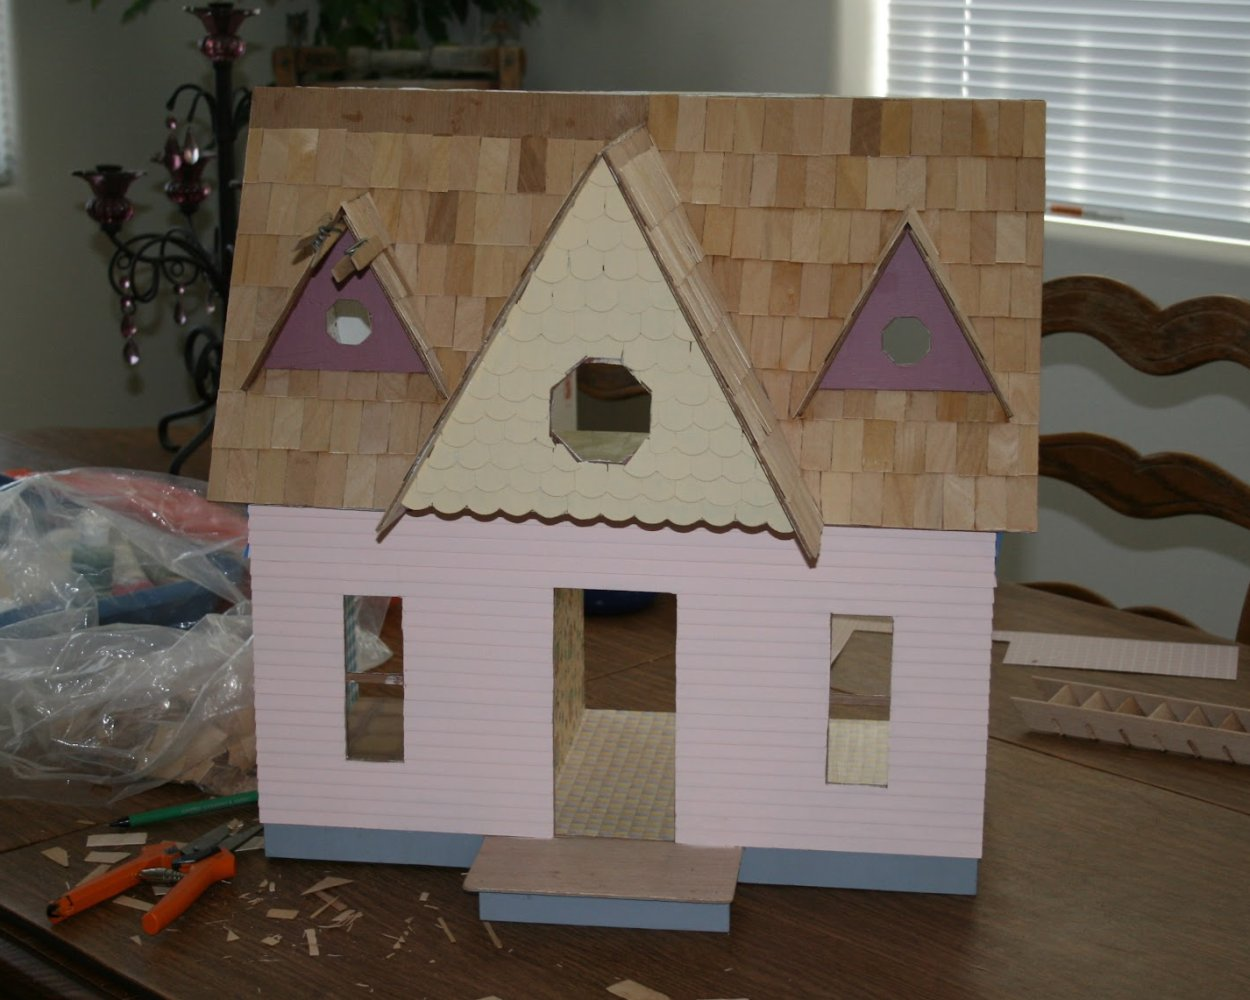 Scrapbook paper dollhouse wallpaper - I Applied Wallpaper And Flooring Prior To Doing The Exterior Siding I Used Scrapbooking Papers Instead Of Pricey And Completely Boring Dollhouse Wallpaper